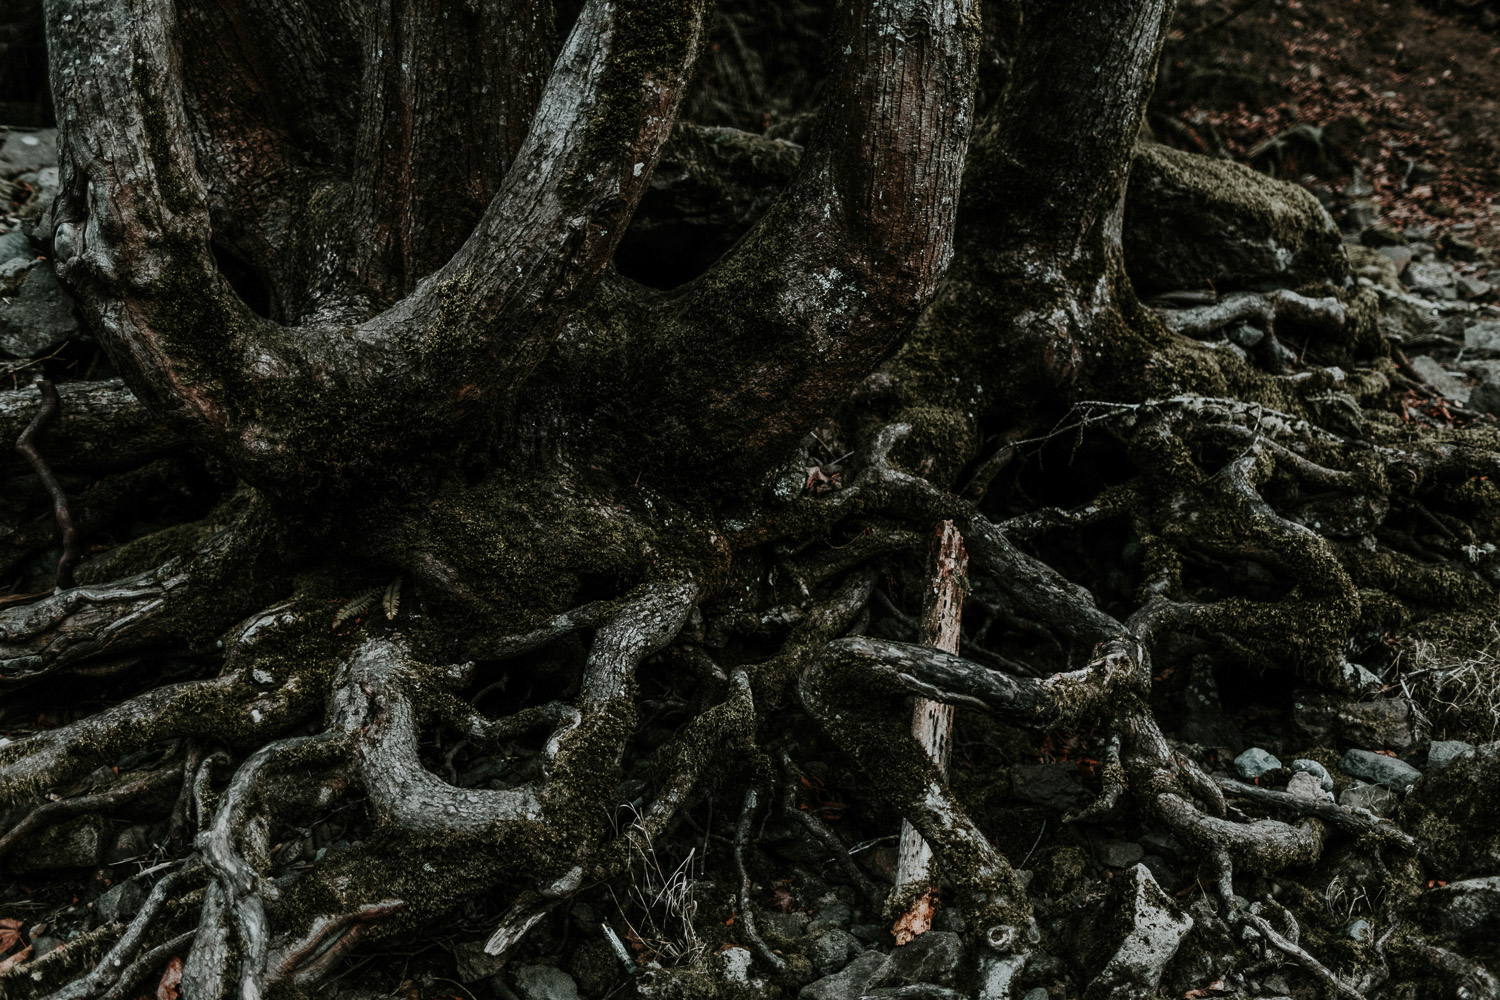 Image of tree roots on the ground